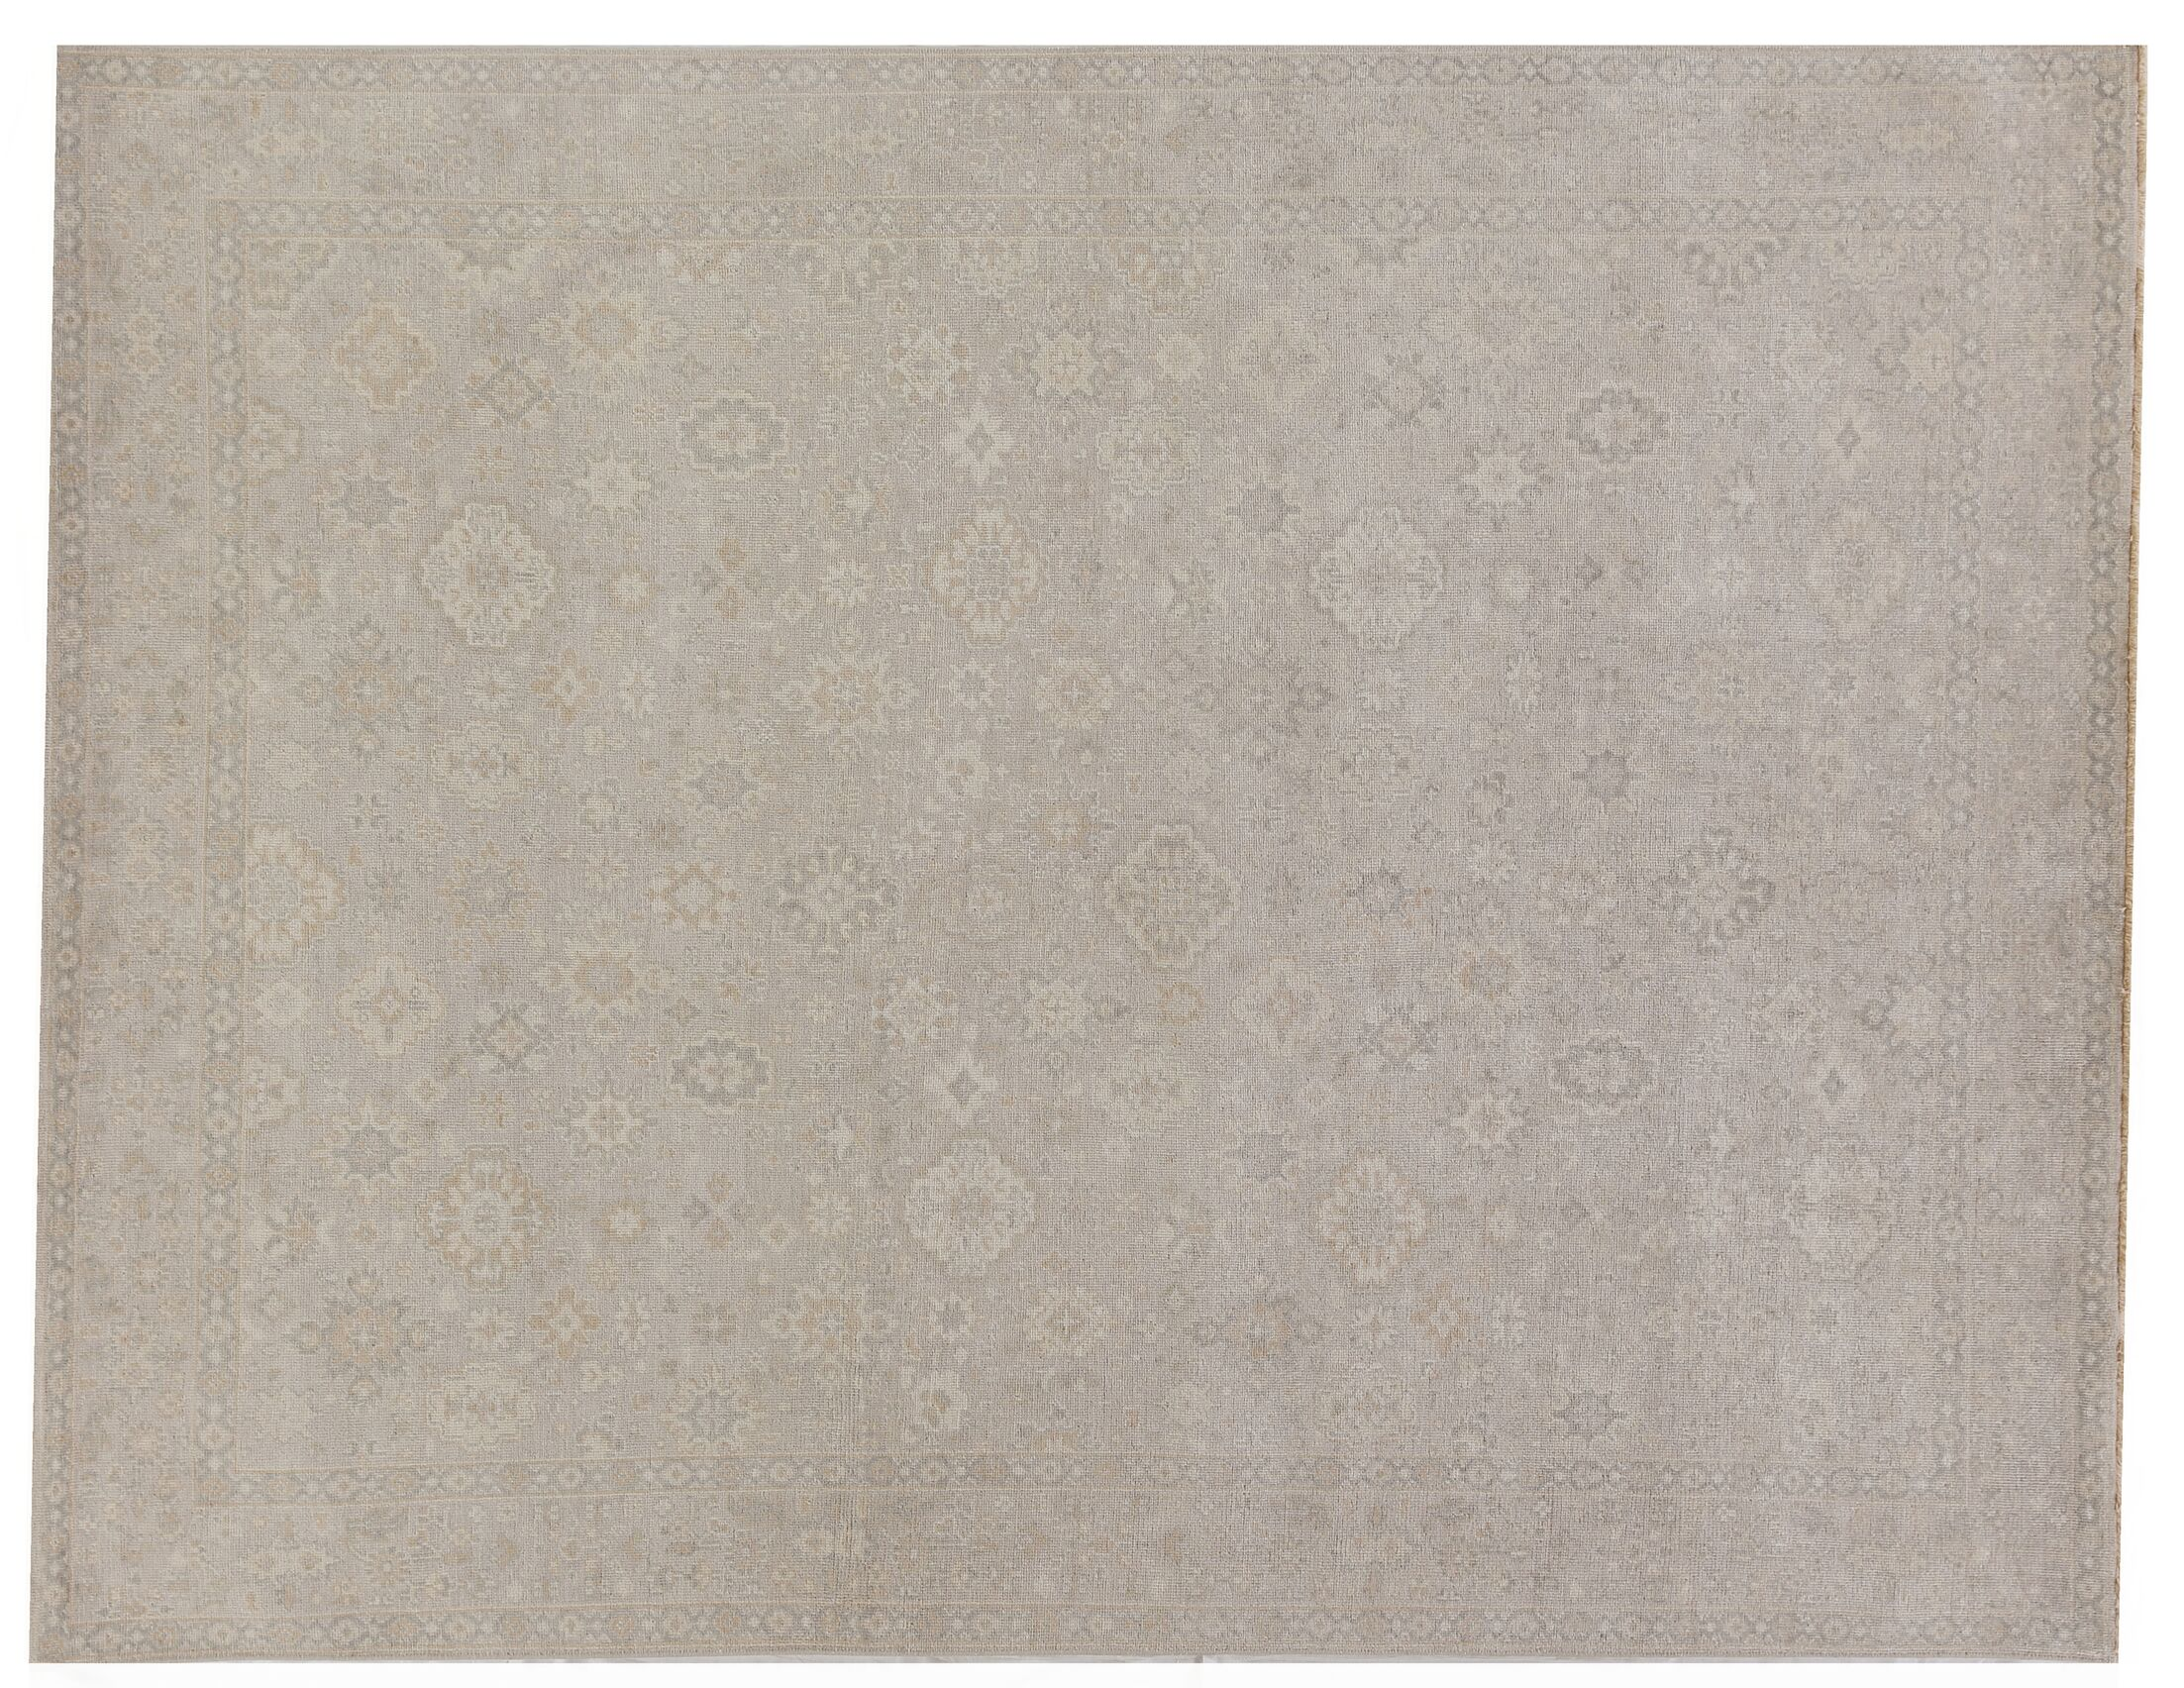 Restoration Hand-Knotted Wool Beige Area Rug Rug Size: Rectangle9' x 12'